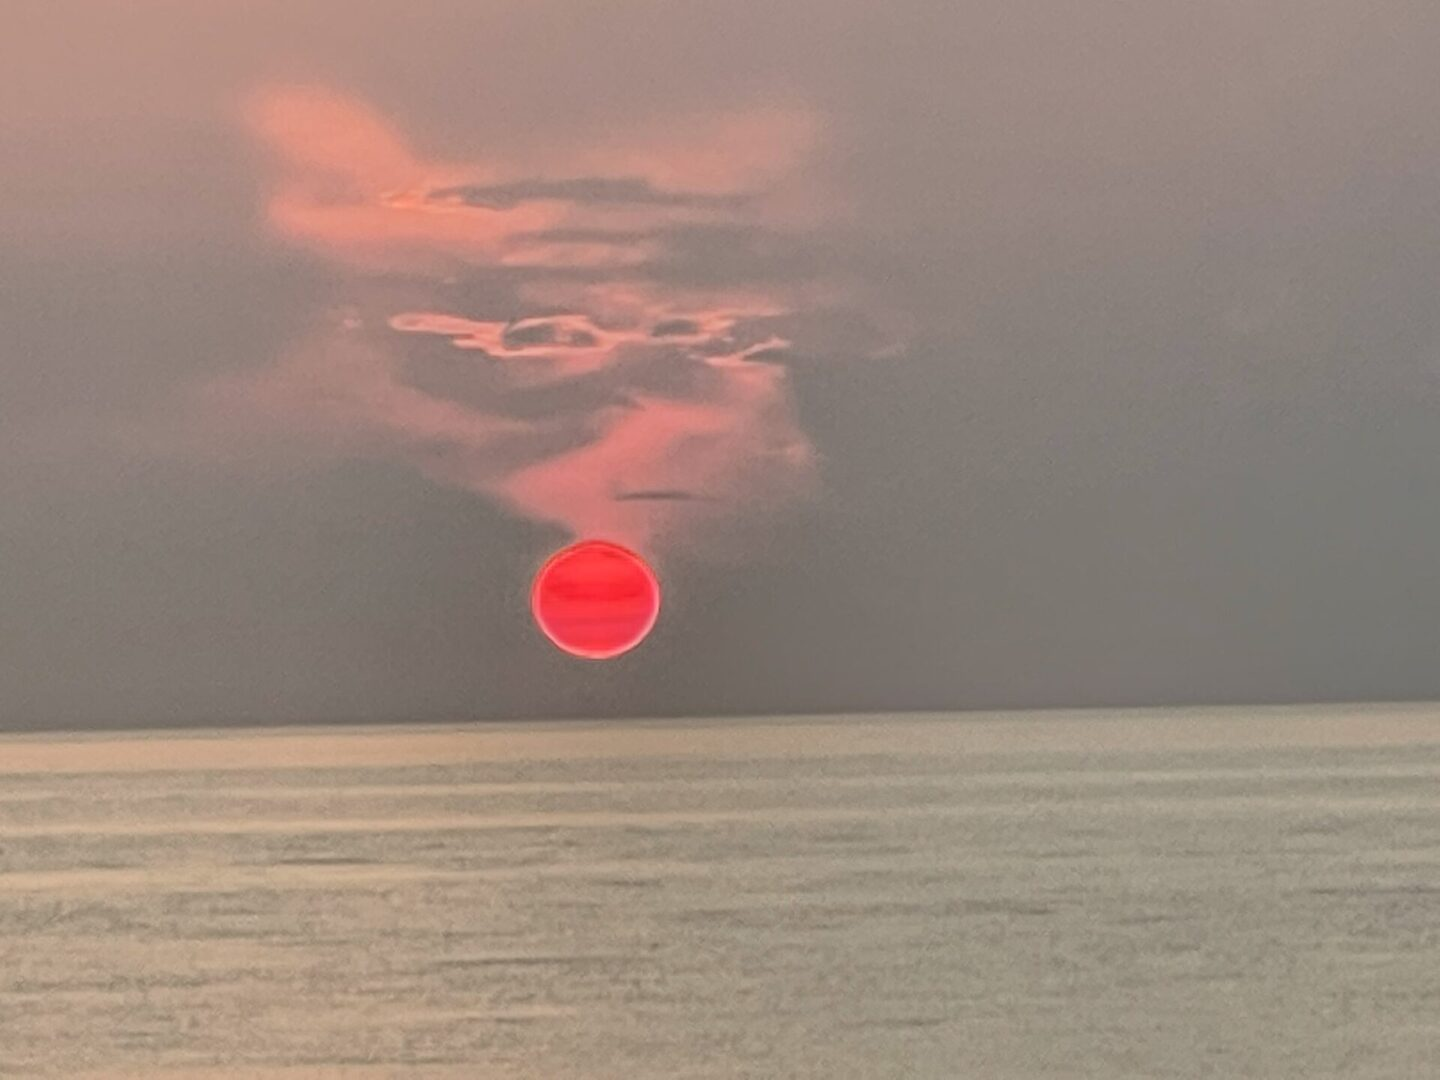 A red sun setting on the horizon